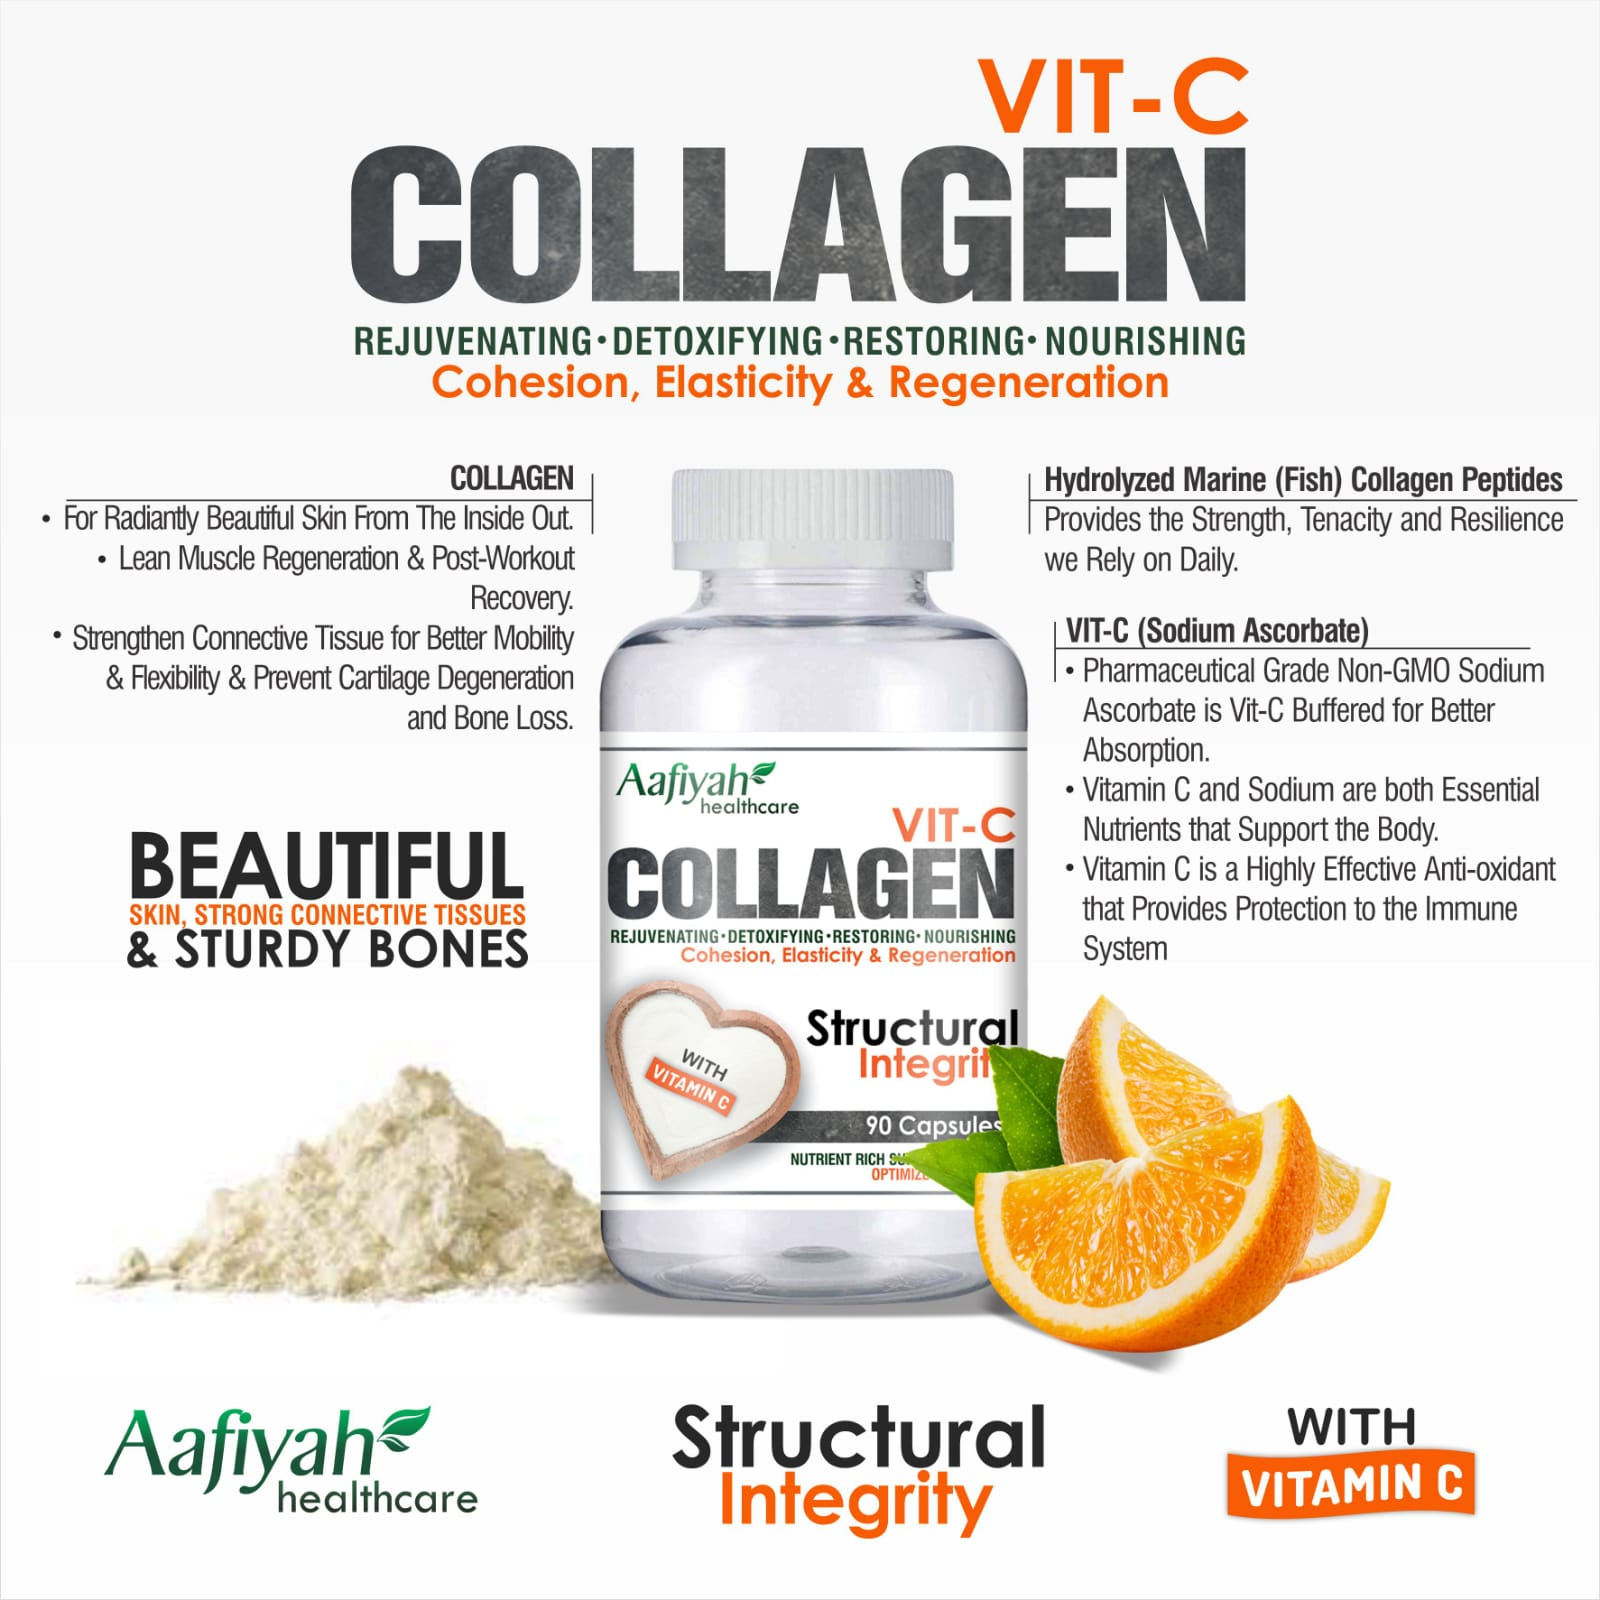 COLLAGEN WITH VIT C